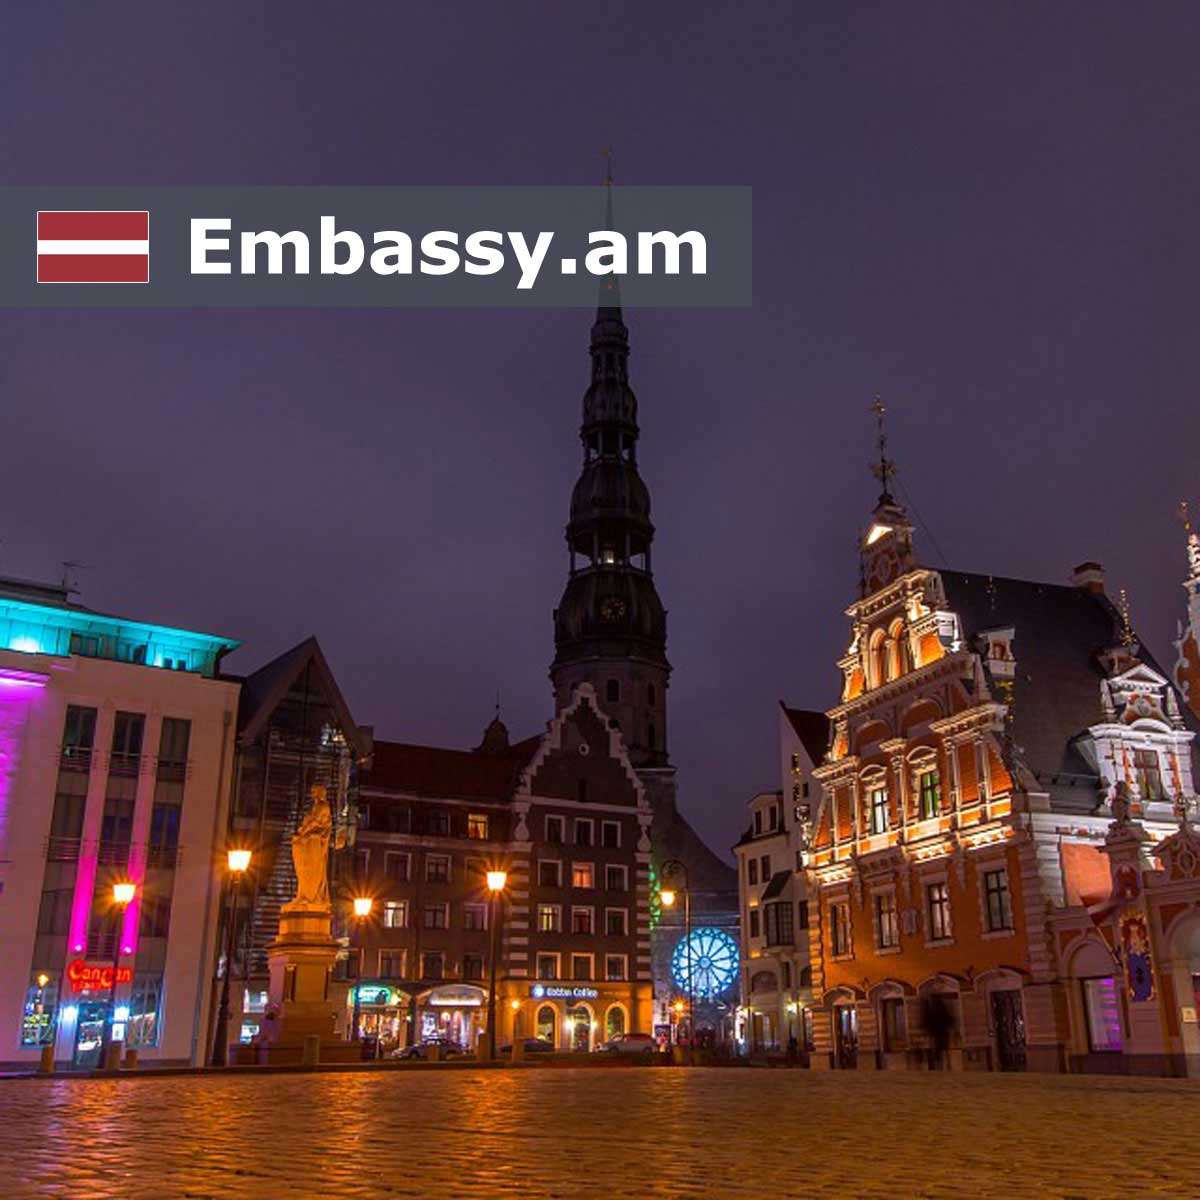 Hotels in Latvia - Embassy.am